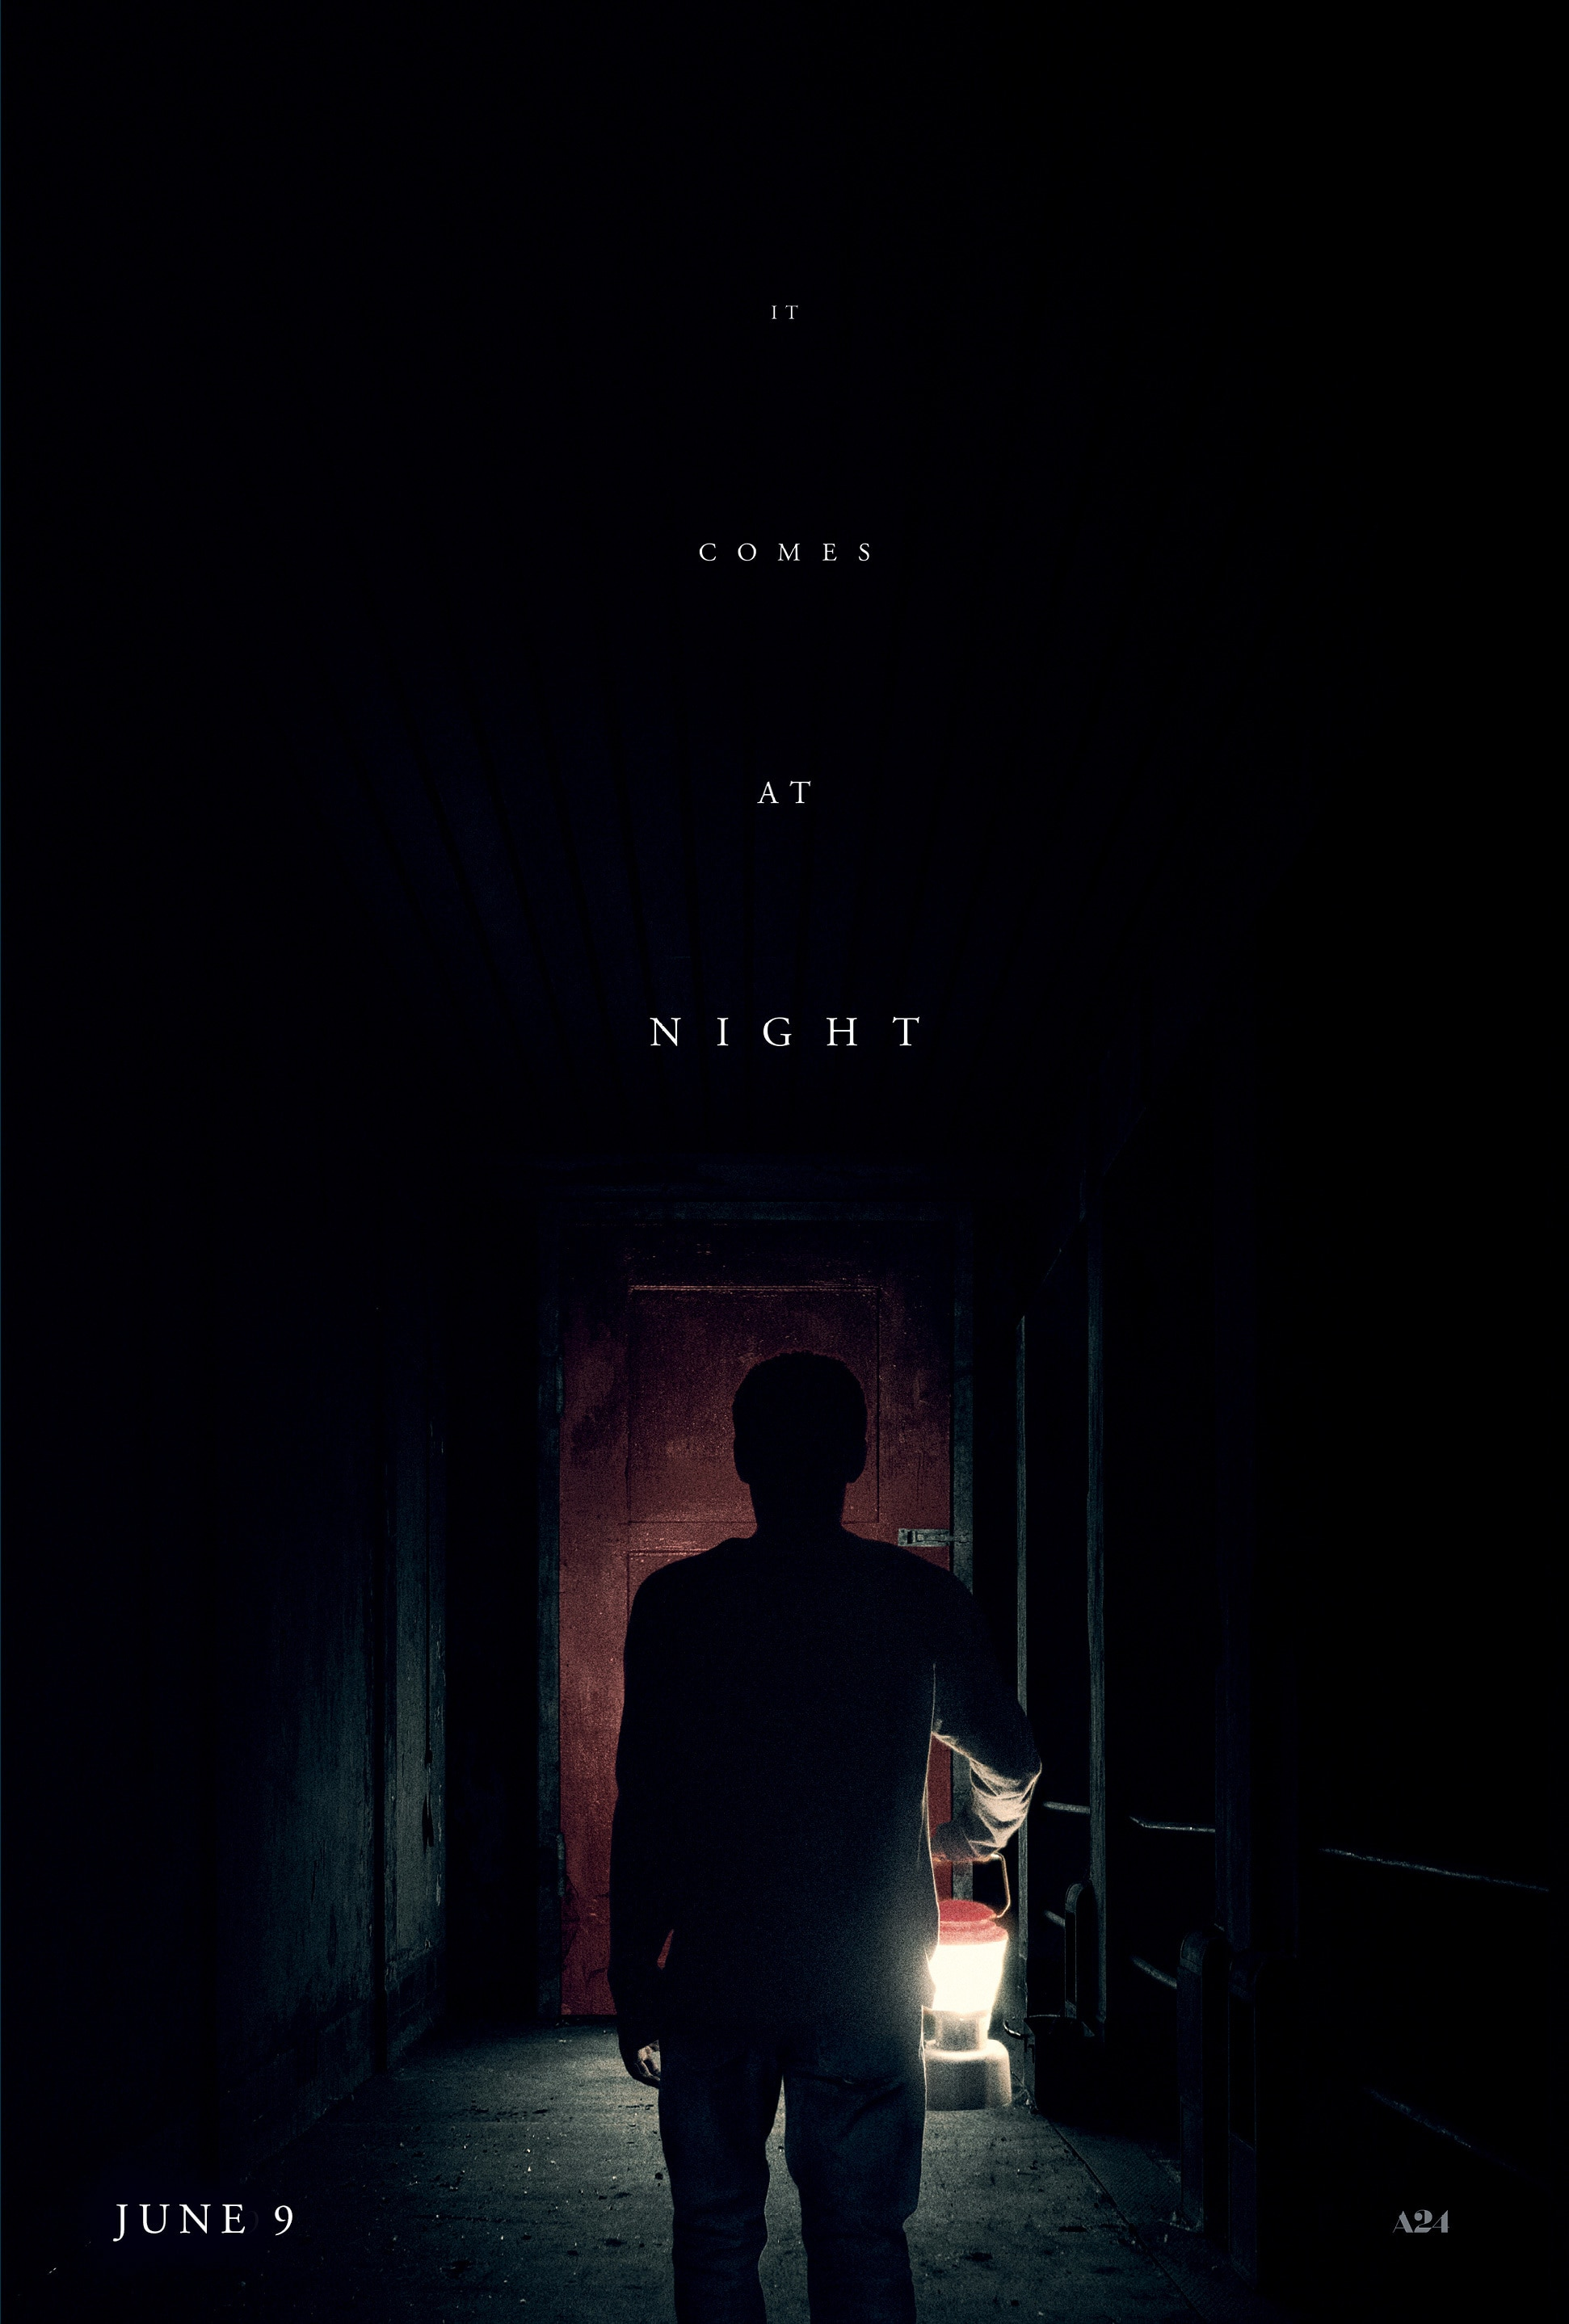 it comes at night poster - It Comes at Night With a Spooky New Image